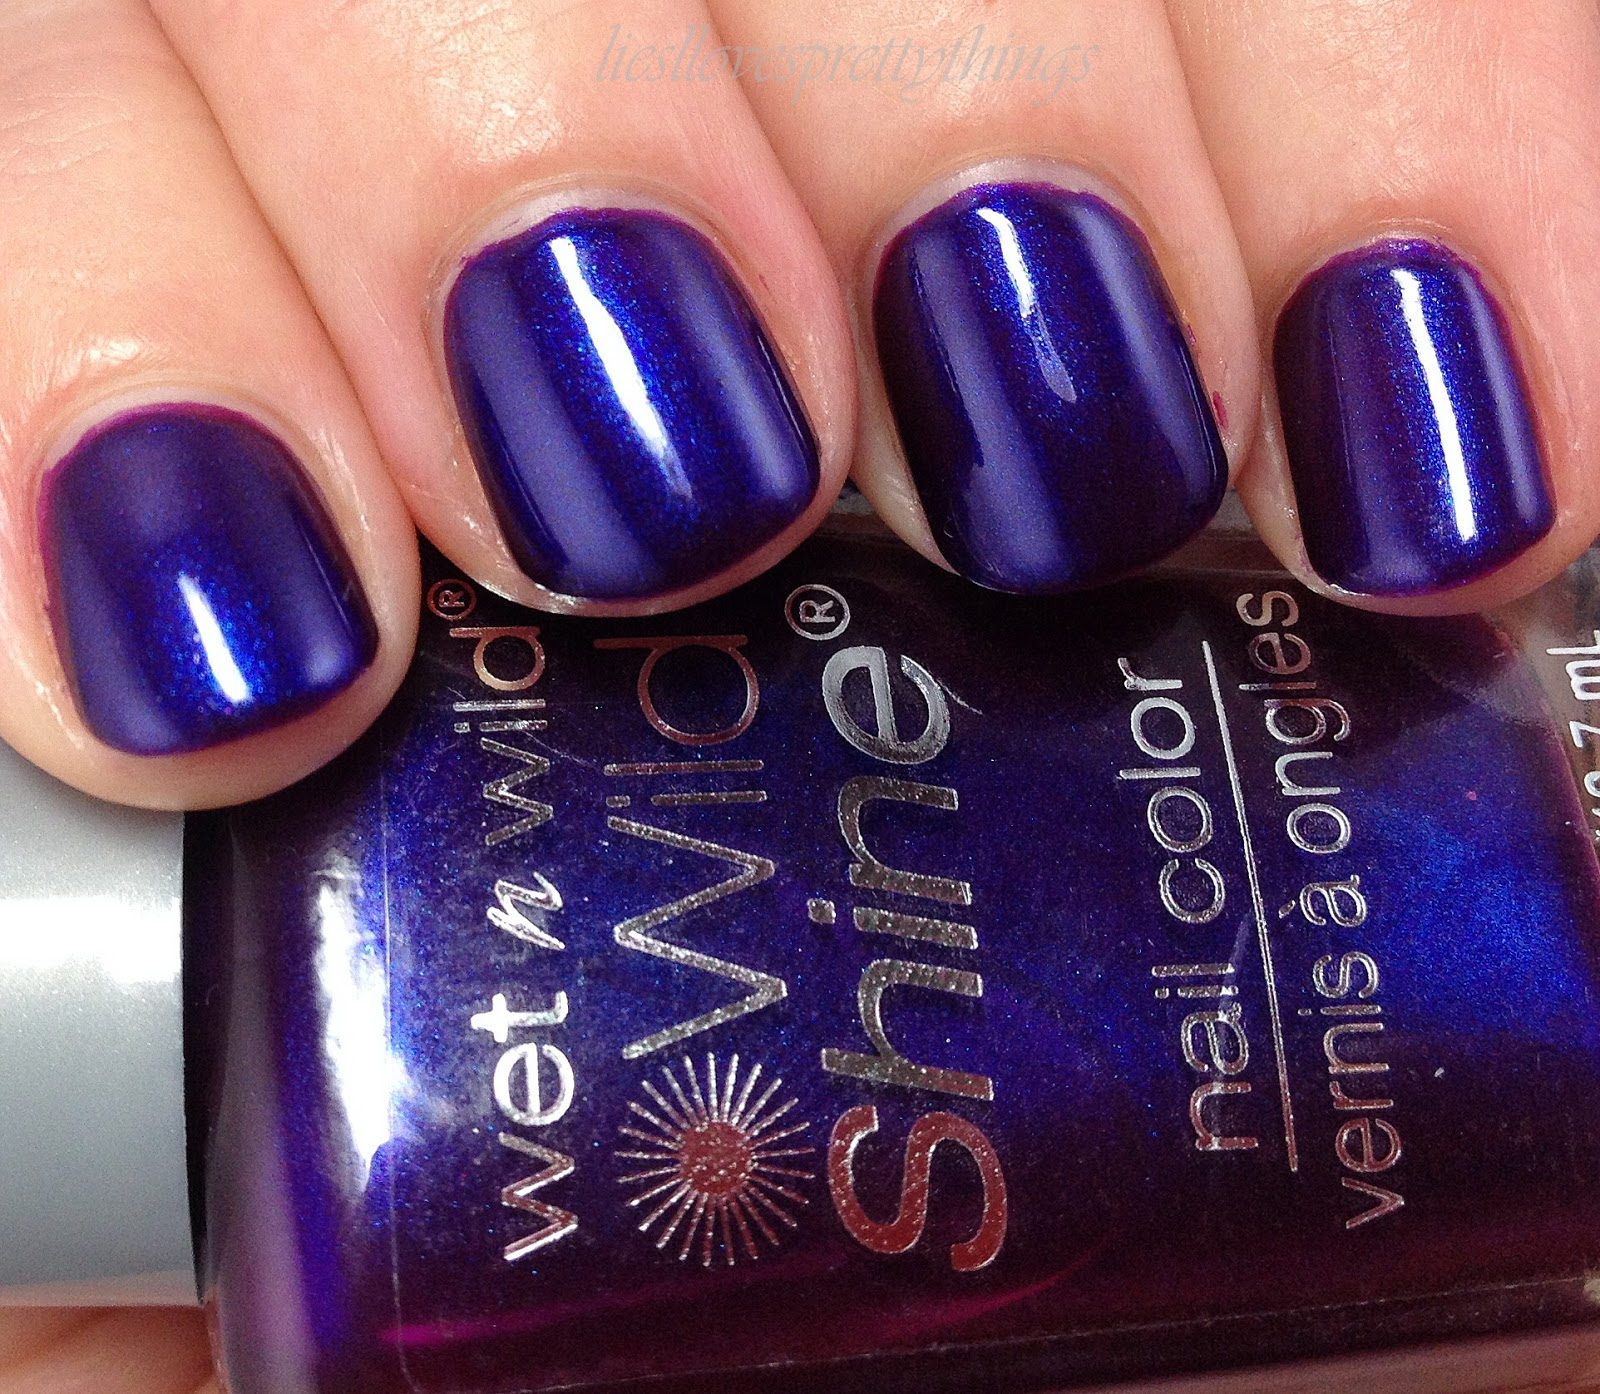 WetnWild Eggplant Frost swatch and review